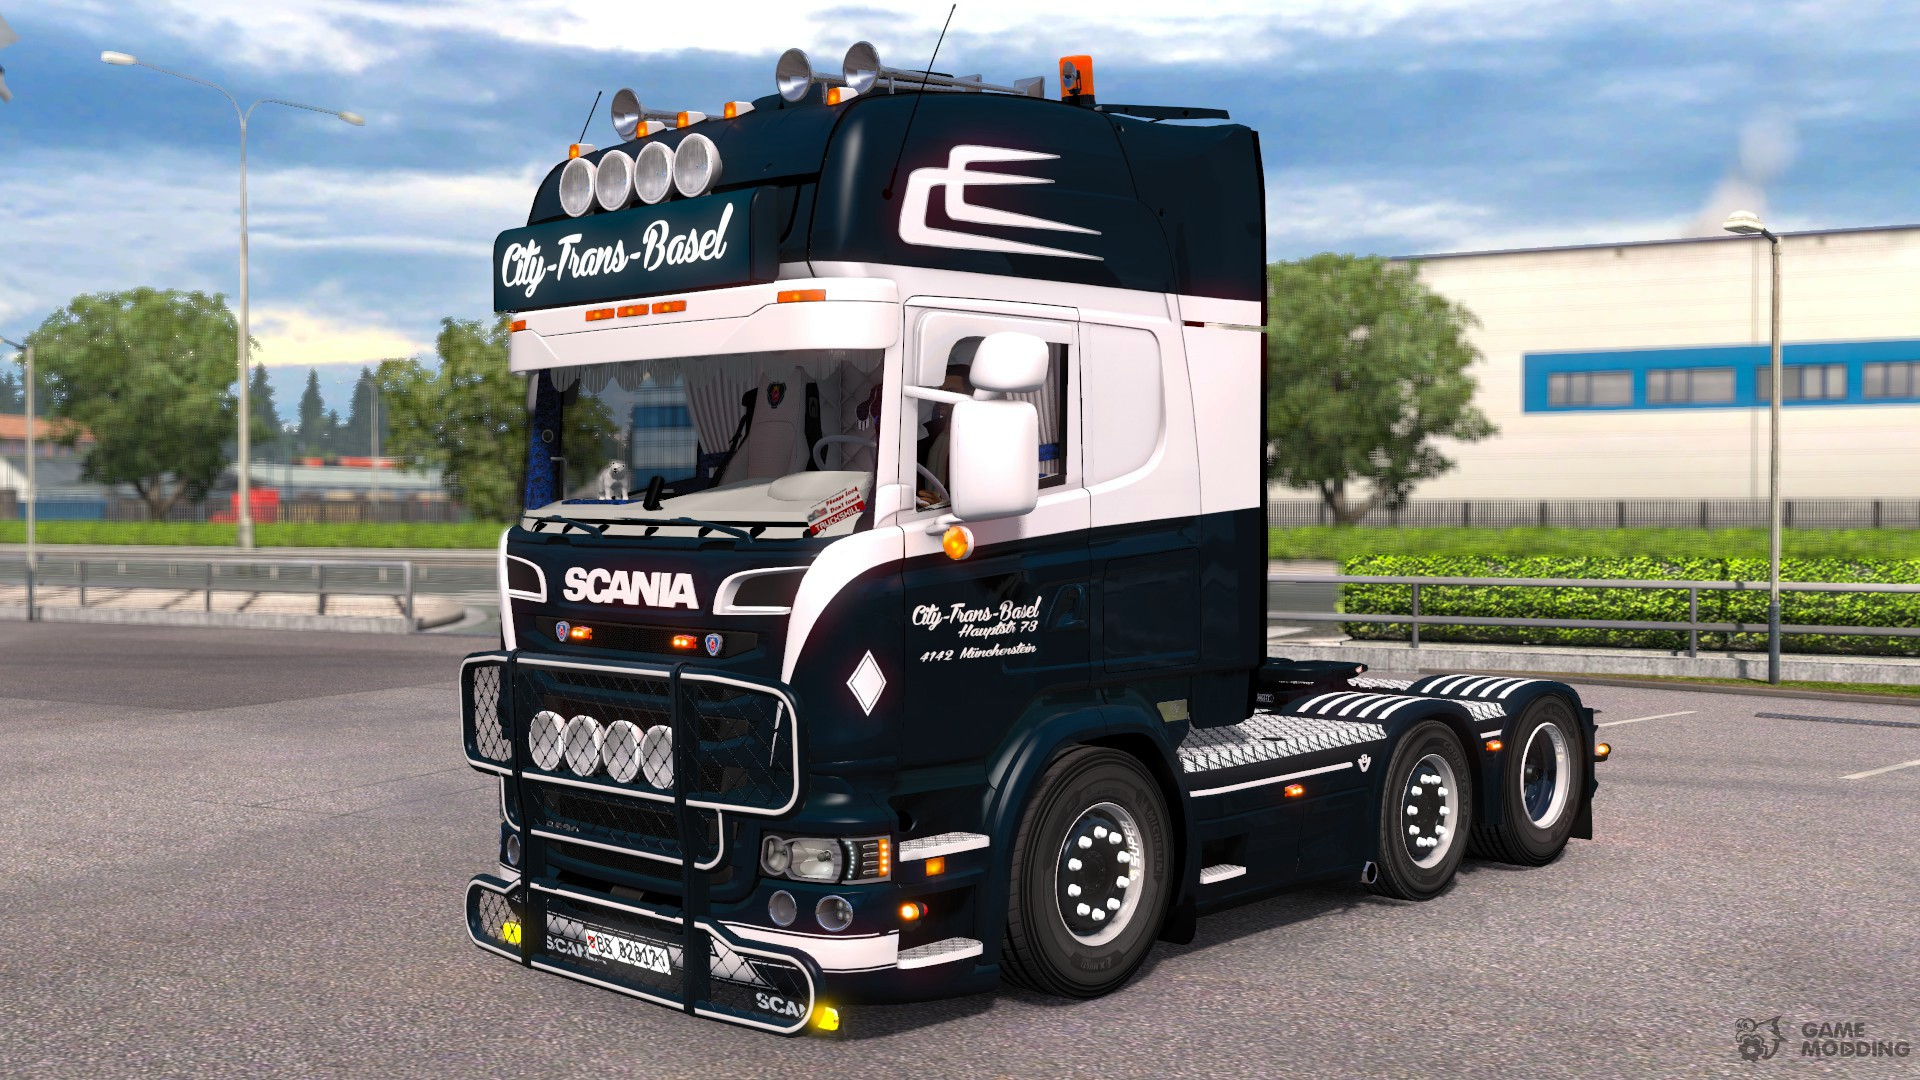 scania r500 city trans basel for euro truck simulator 2. Black Bedroom Furniture Sets. Home Design Ideas